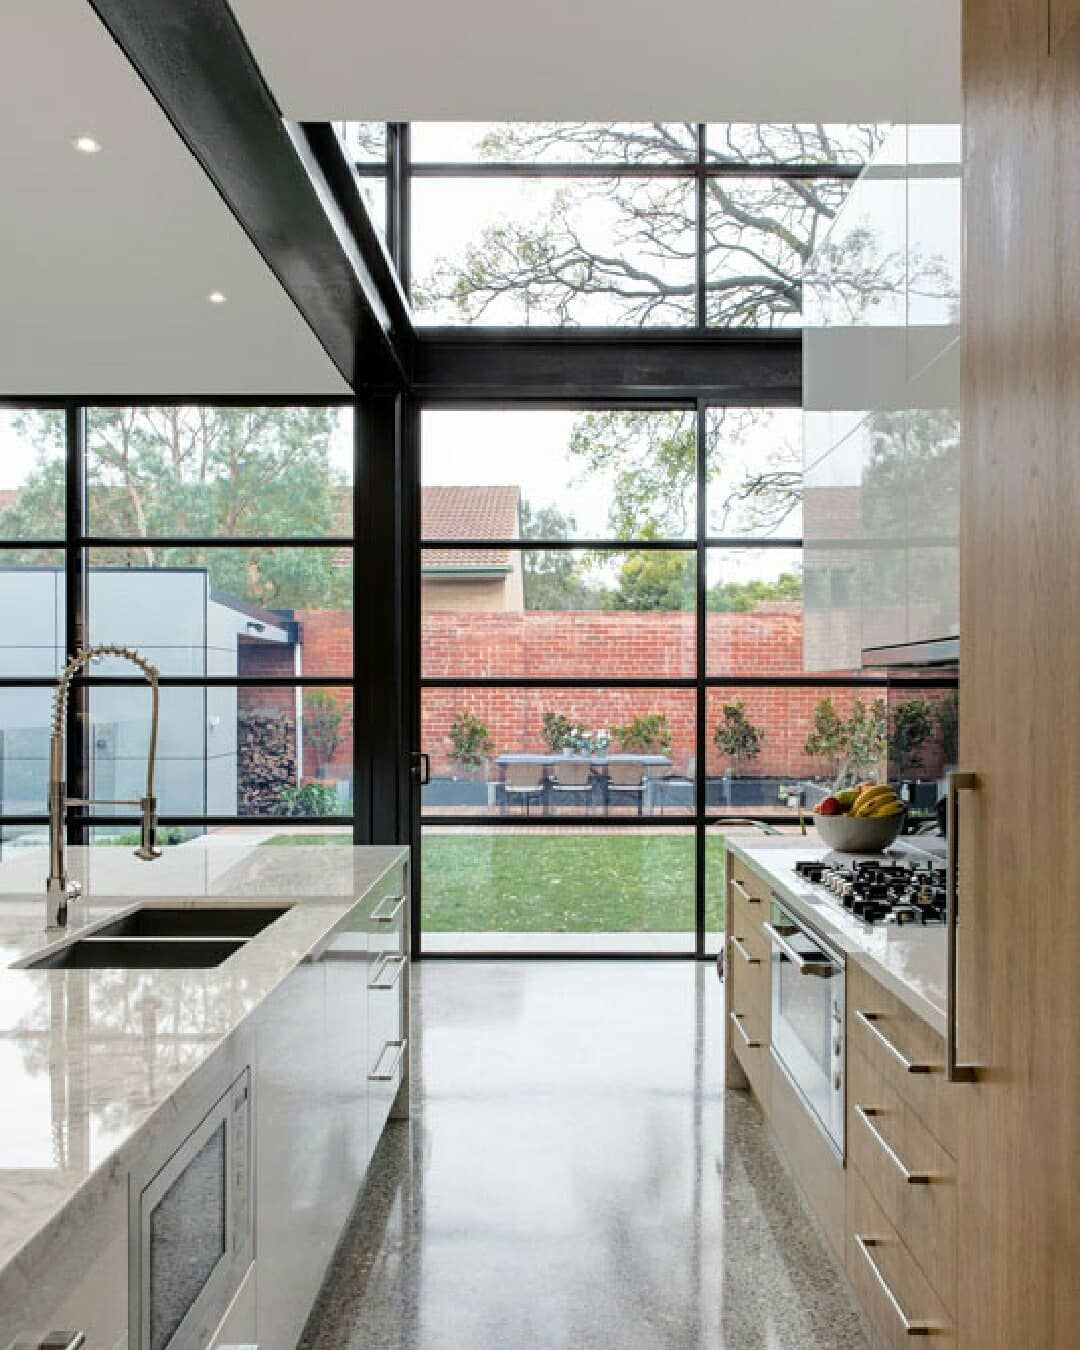 How S This For A Statement Kitchen Polished Concrete Floors Large Statement Windows In 2020 Statement Kitchen Windows Bathtub Walls